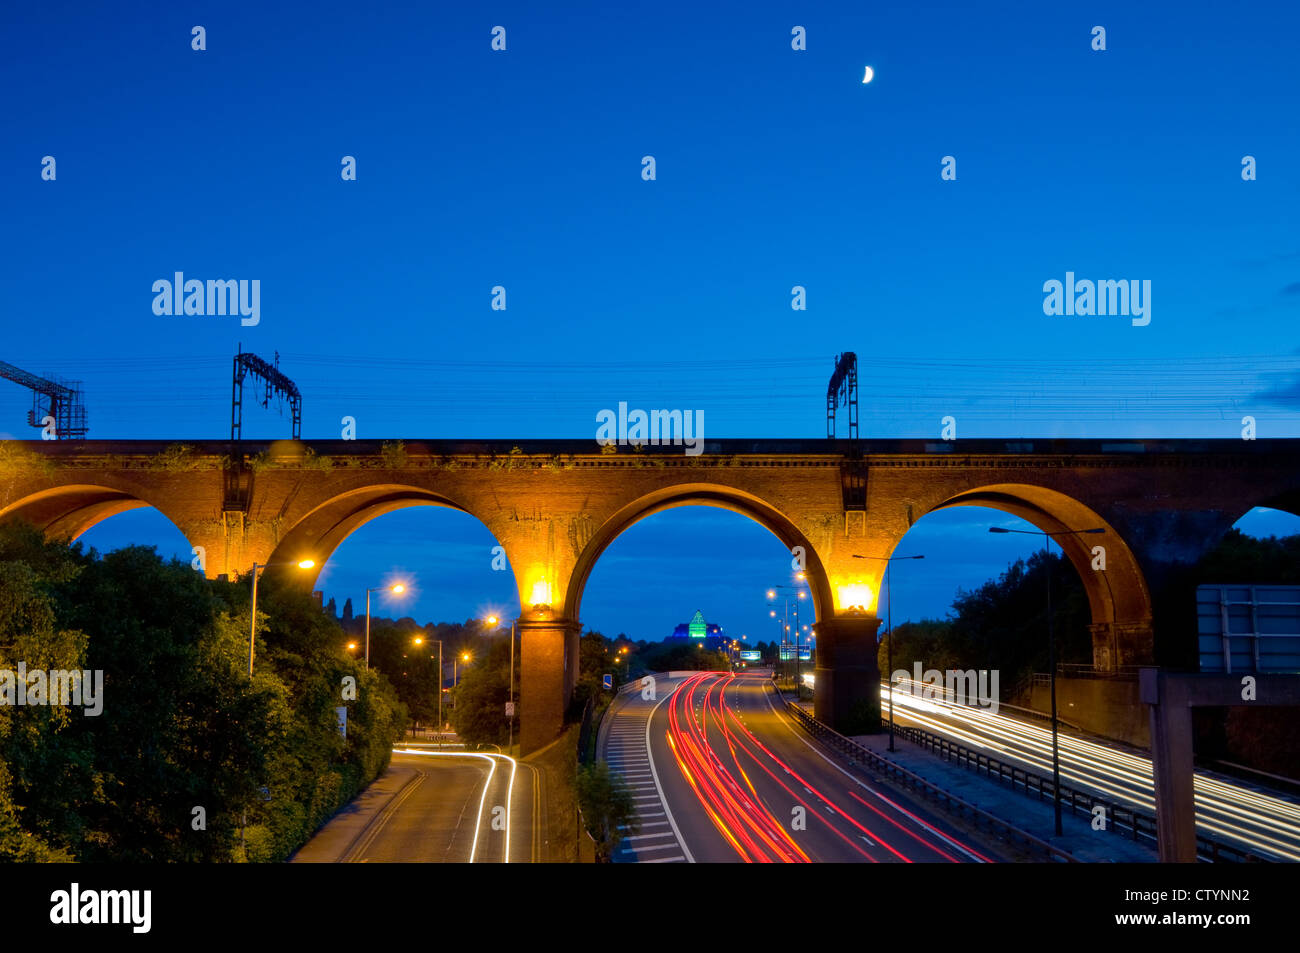 A railway track on a viaduct at Stockport, Greater manchester, England - Stock Image